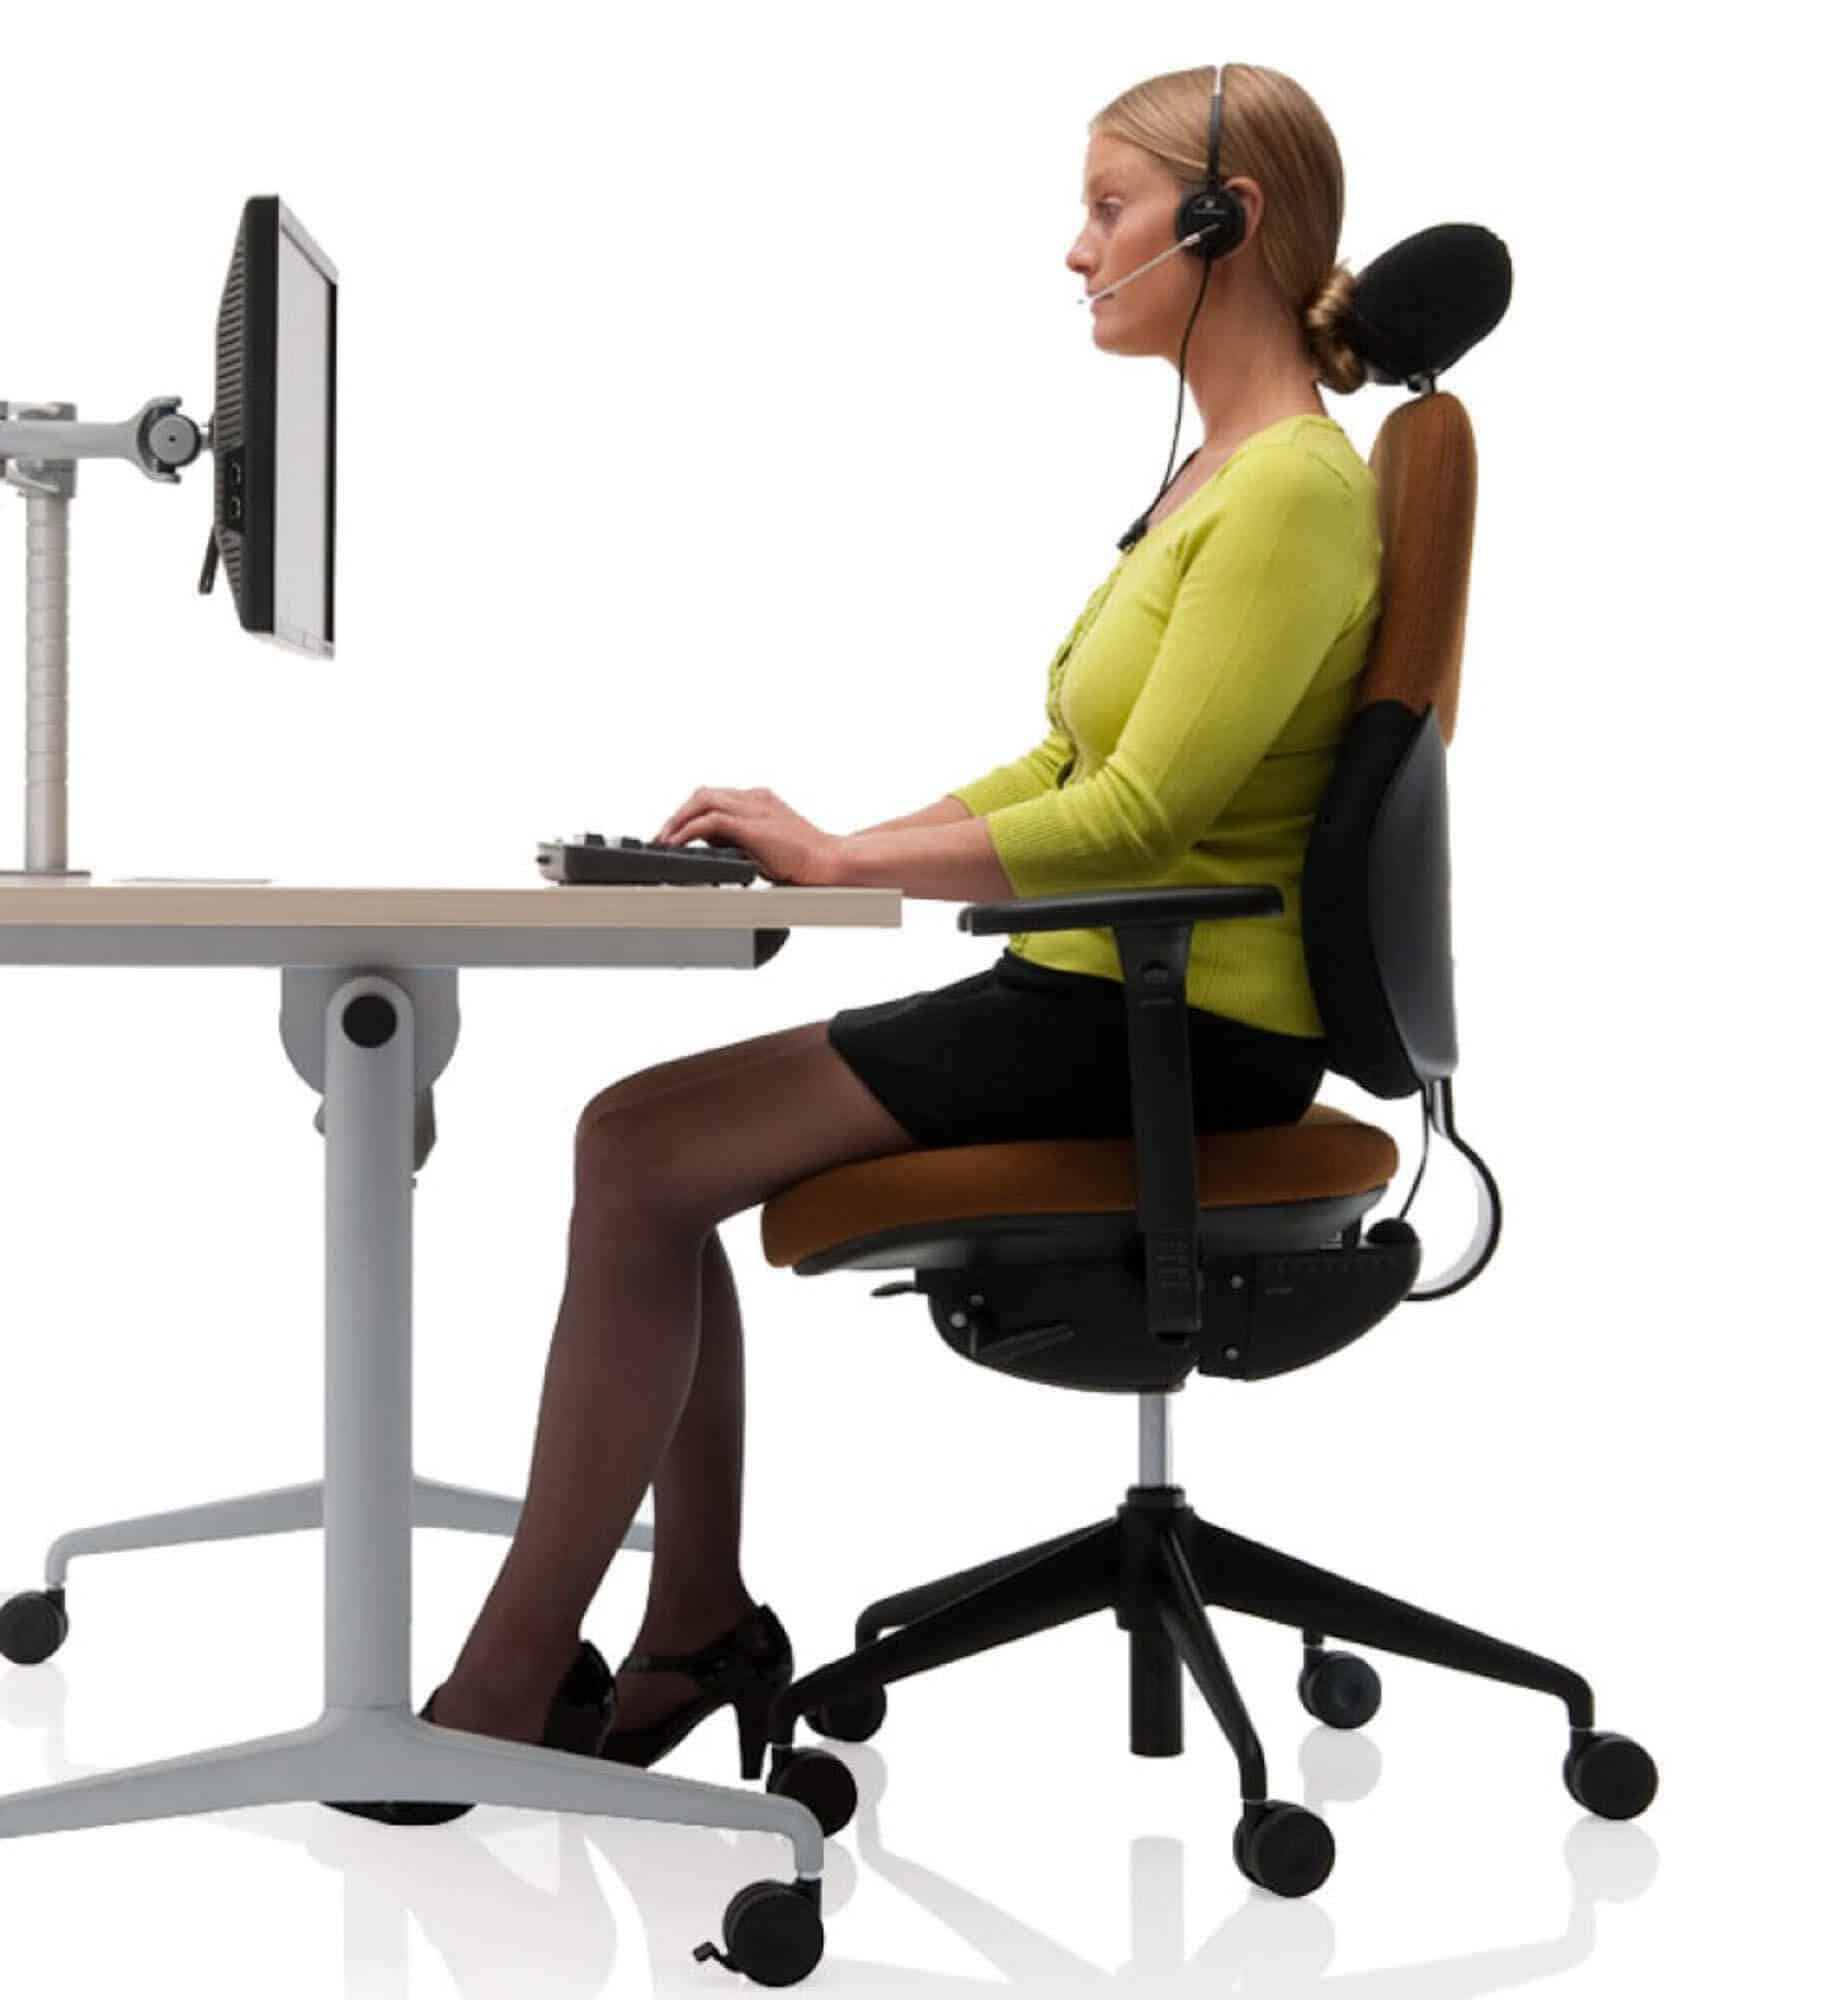 sitting chair cover hire cumbria office guide and how to buy a desk 43 top 10